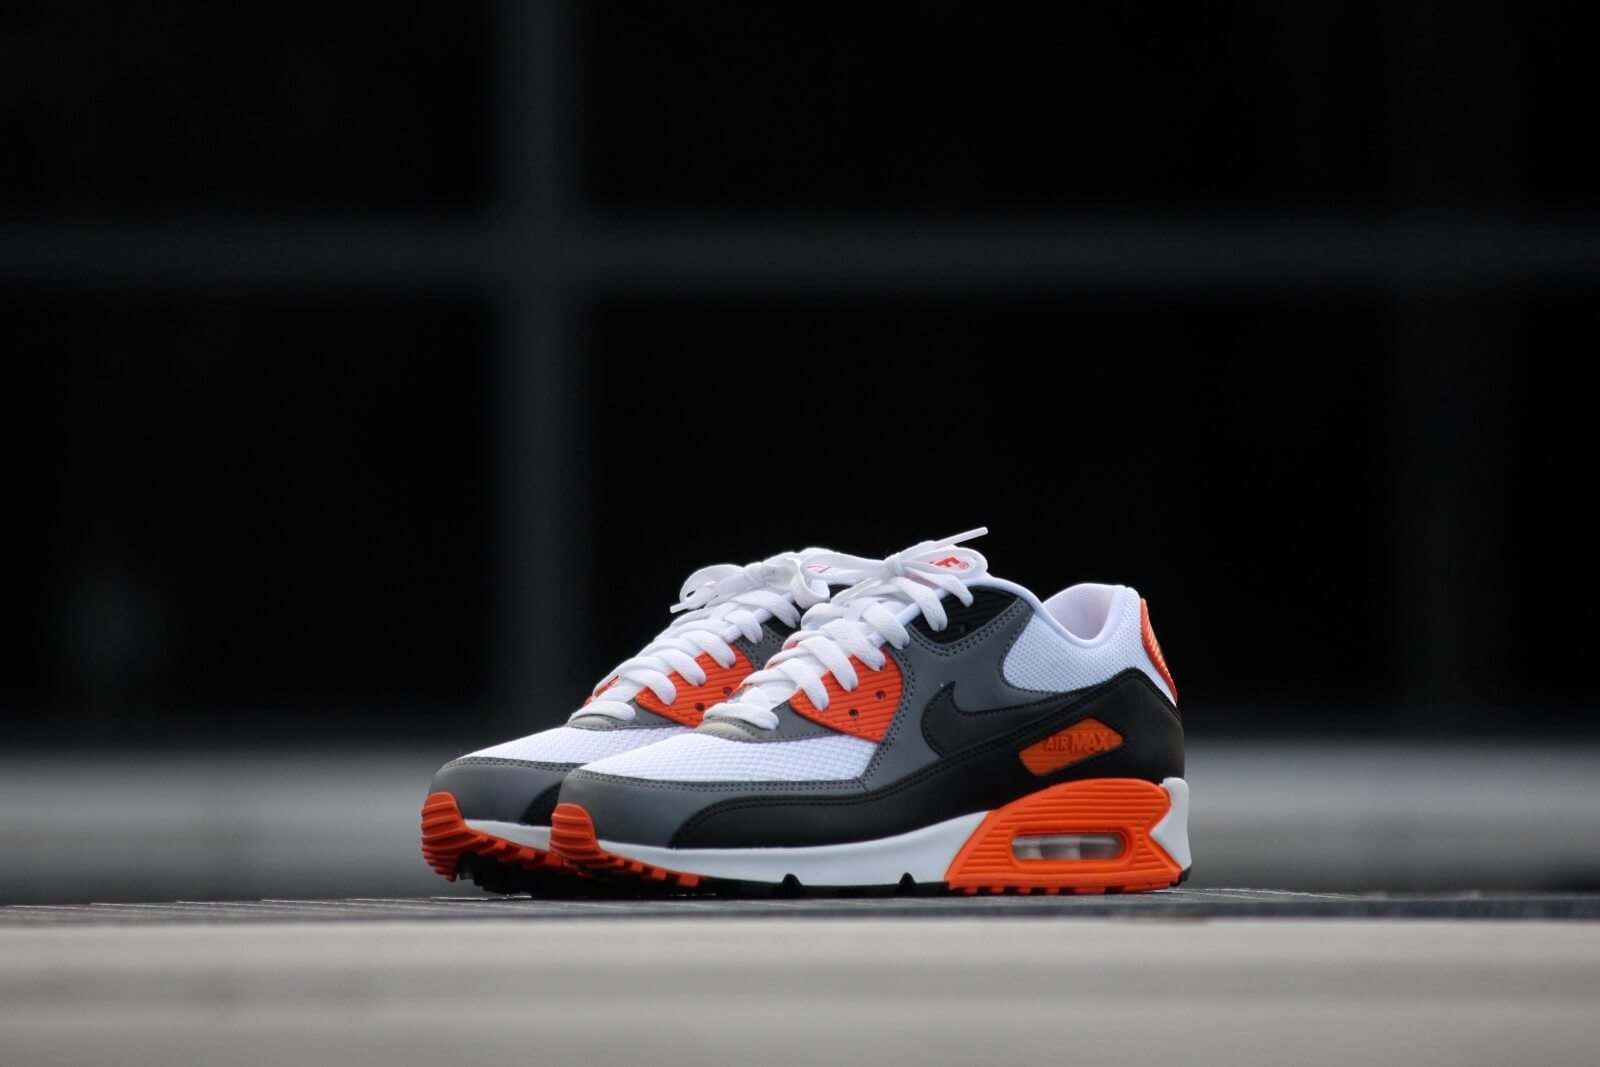 Nike Air Max 90 Essential White Anthracite Cool Grey Orange